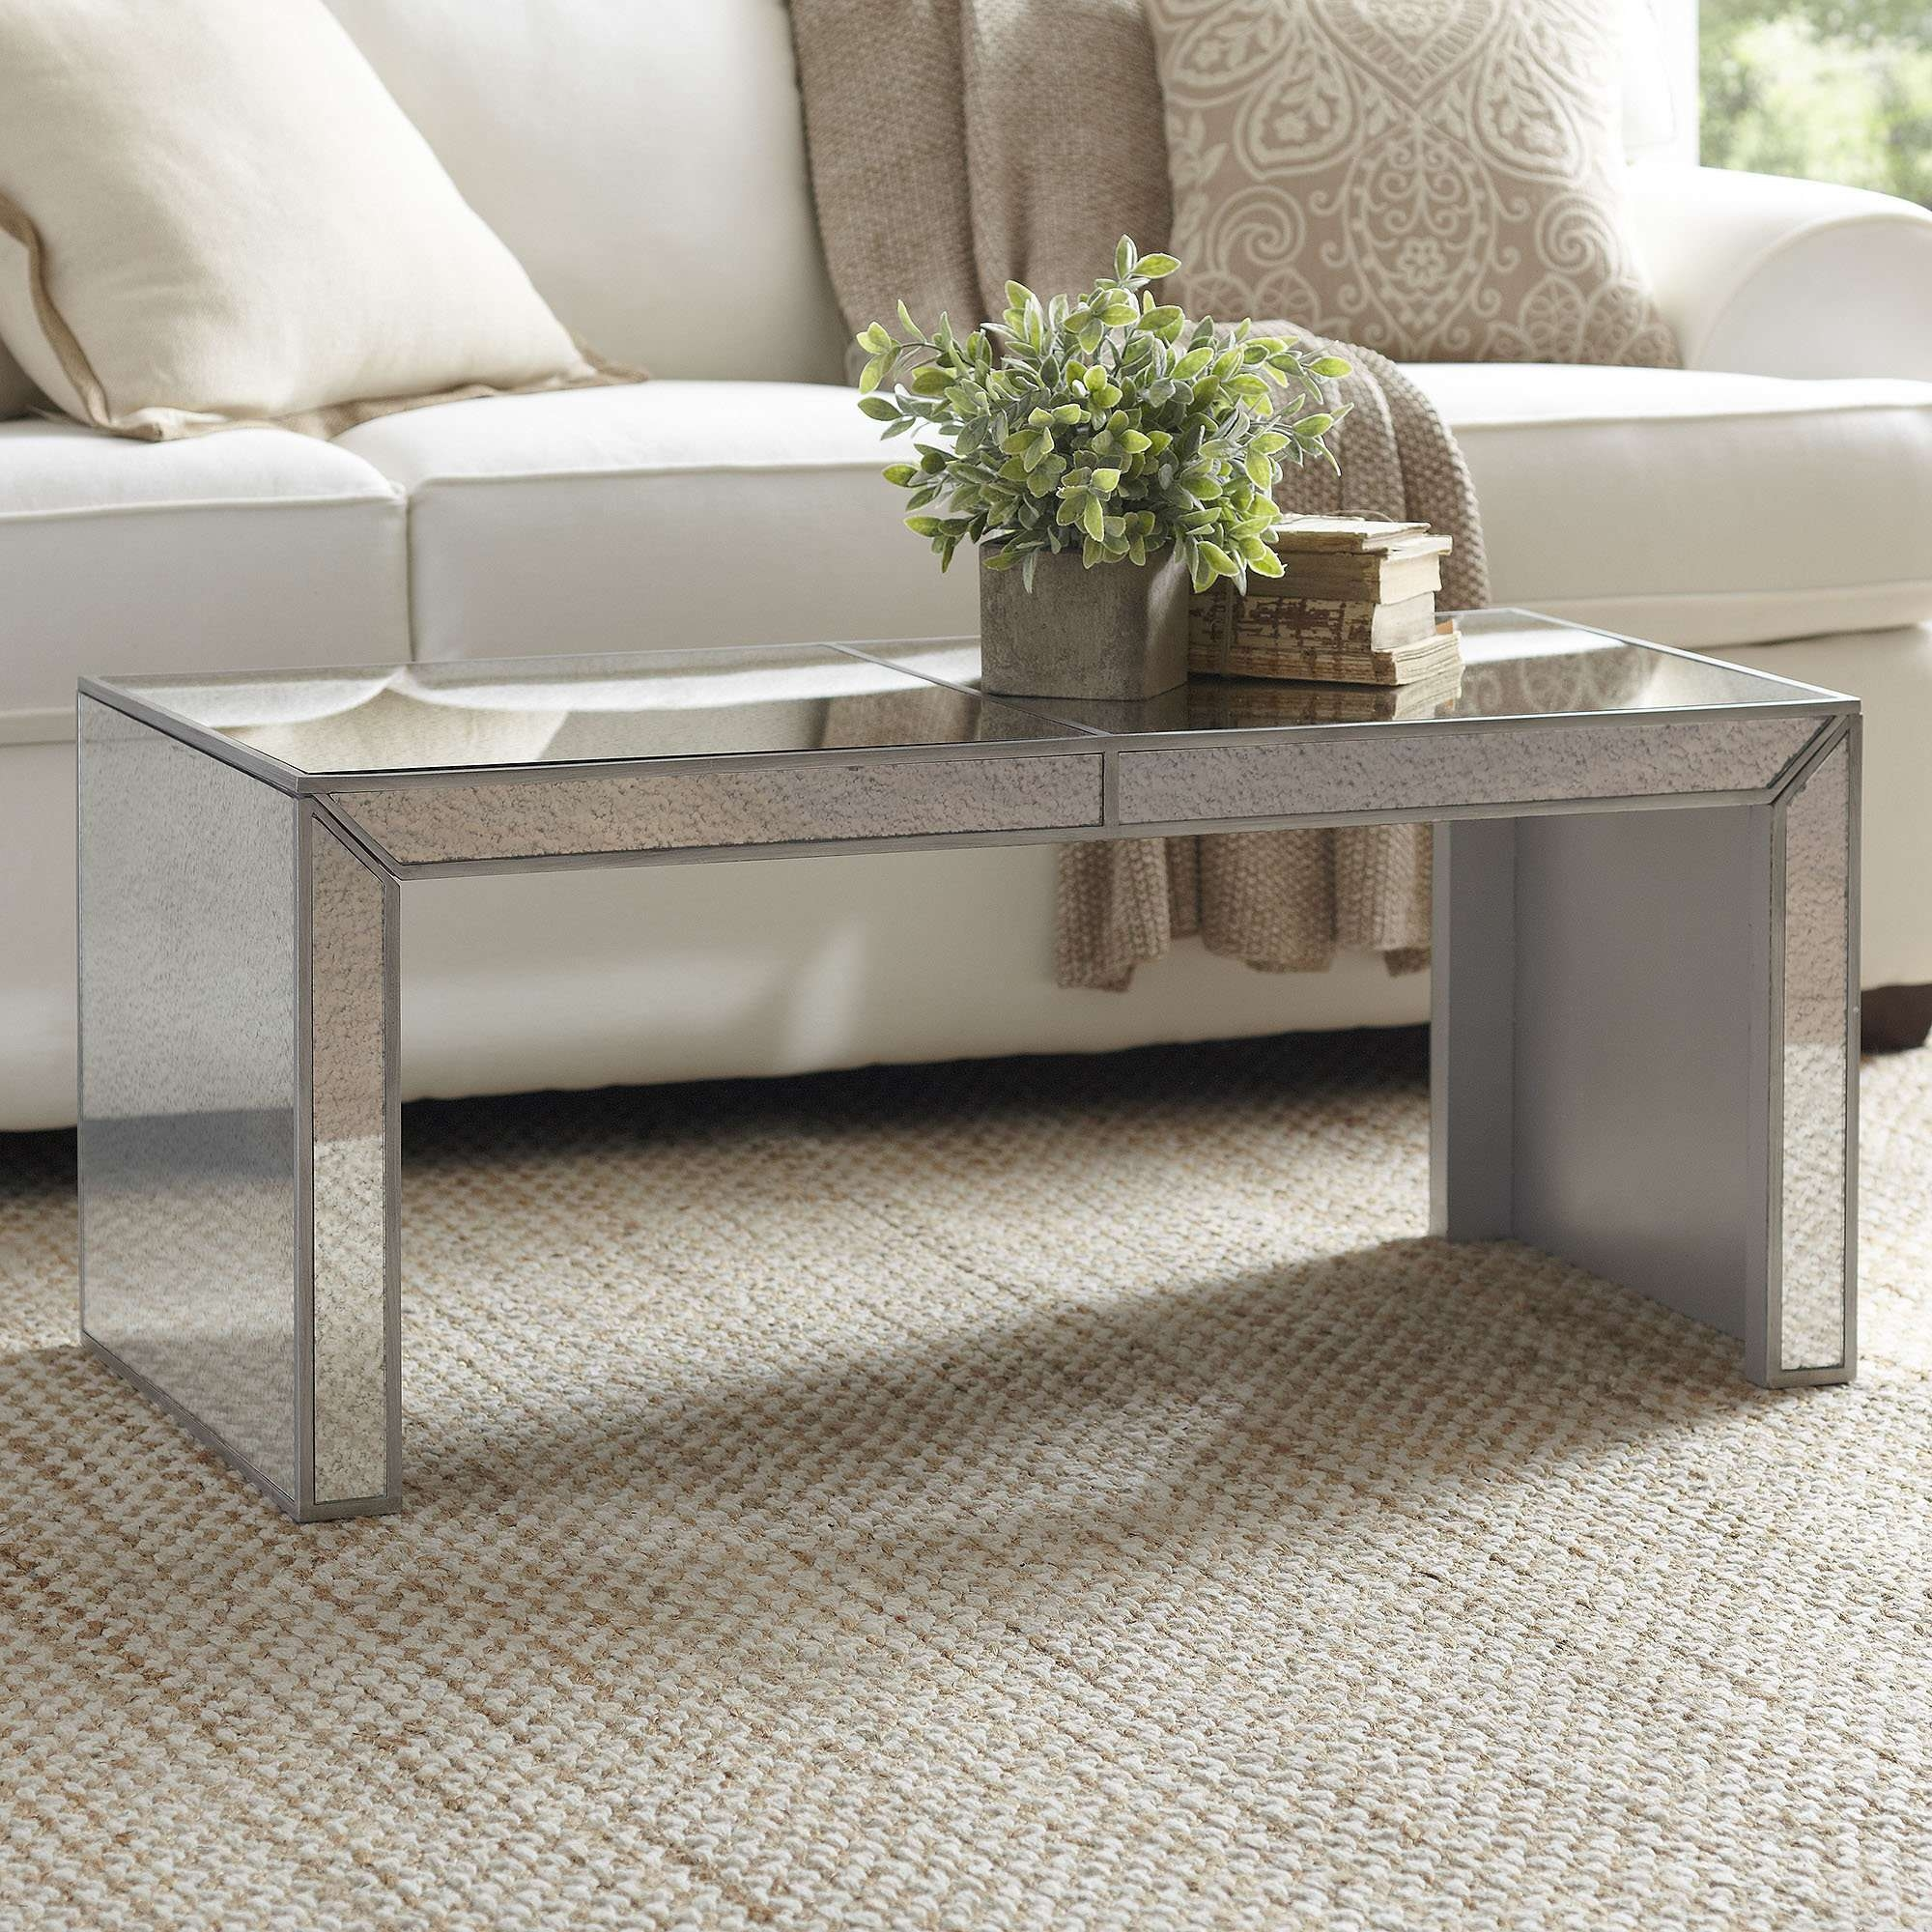 Widely Used Mirrored Coffee Tables Intended For Elliott Mirrored Coffee Table & Reviews (View 8 of 20)